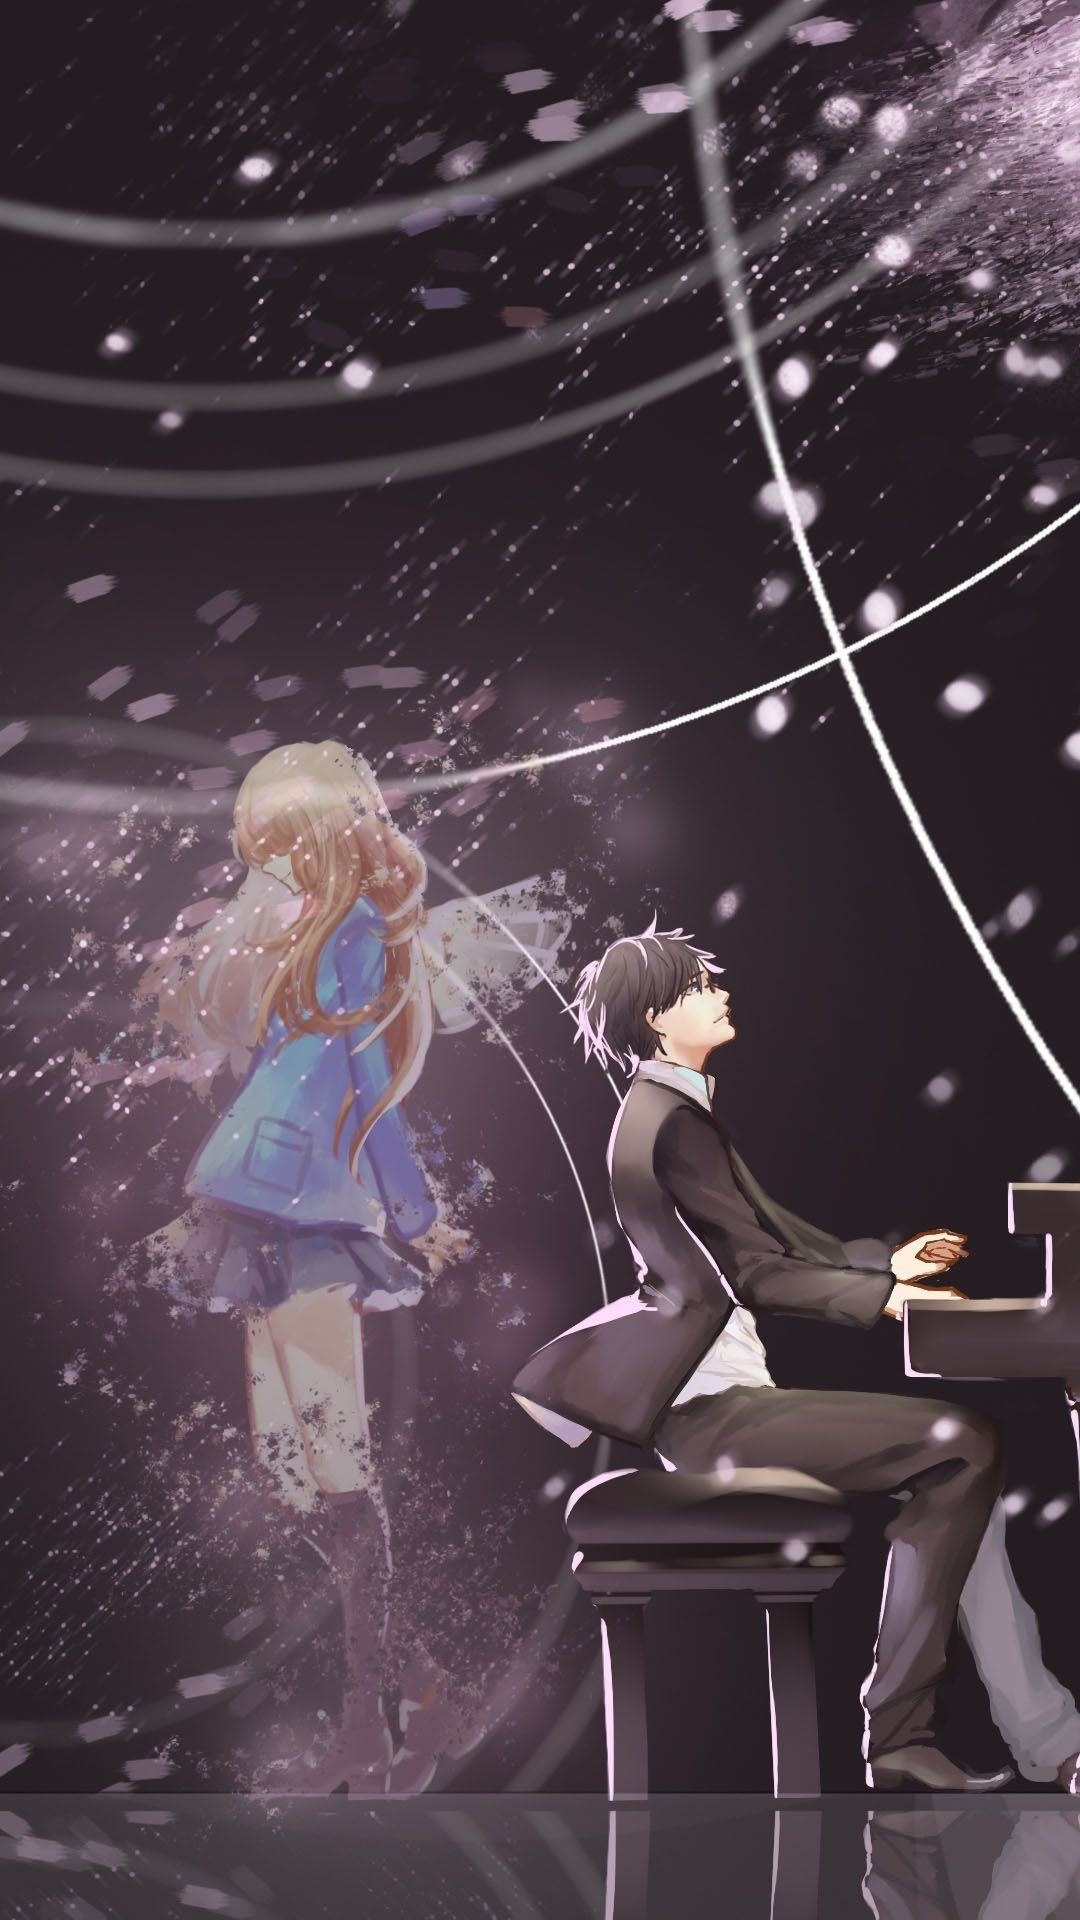 your lie in april wallpaper iphone